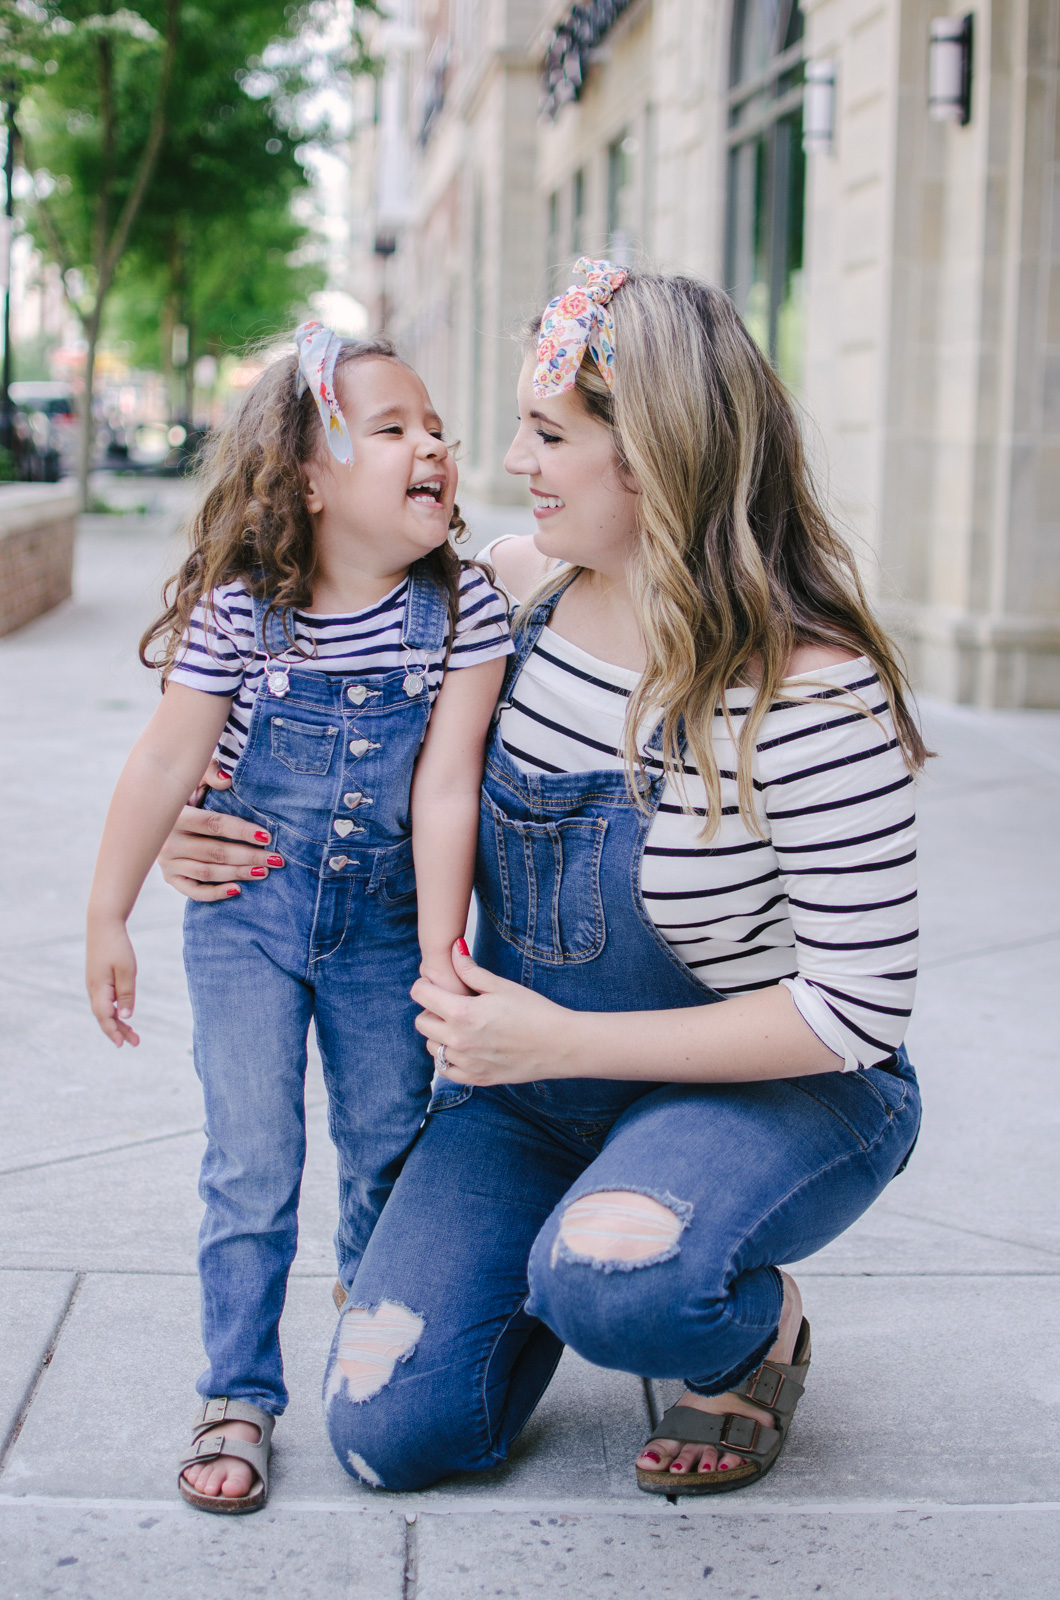 matching mommy and me overalls outfits | bylaurenm.com